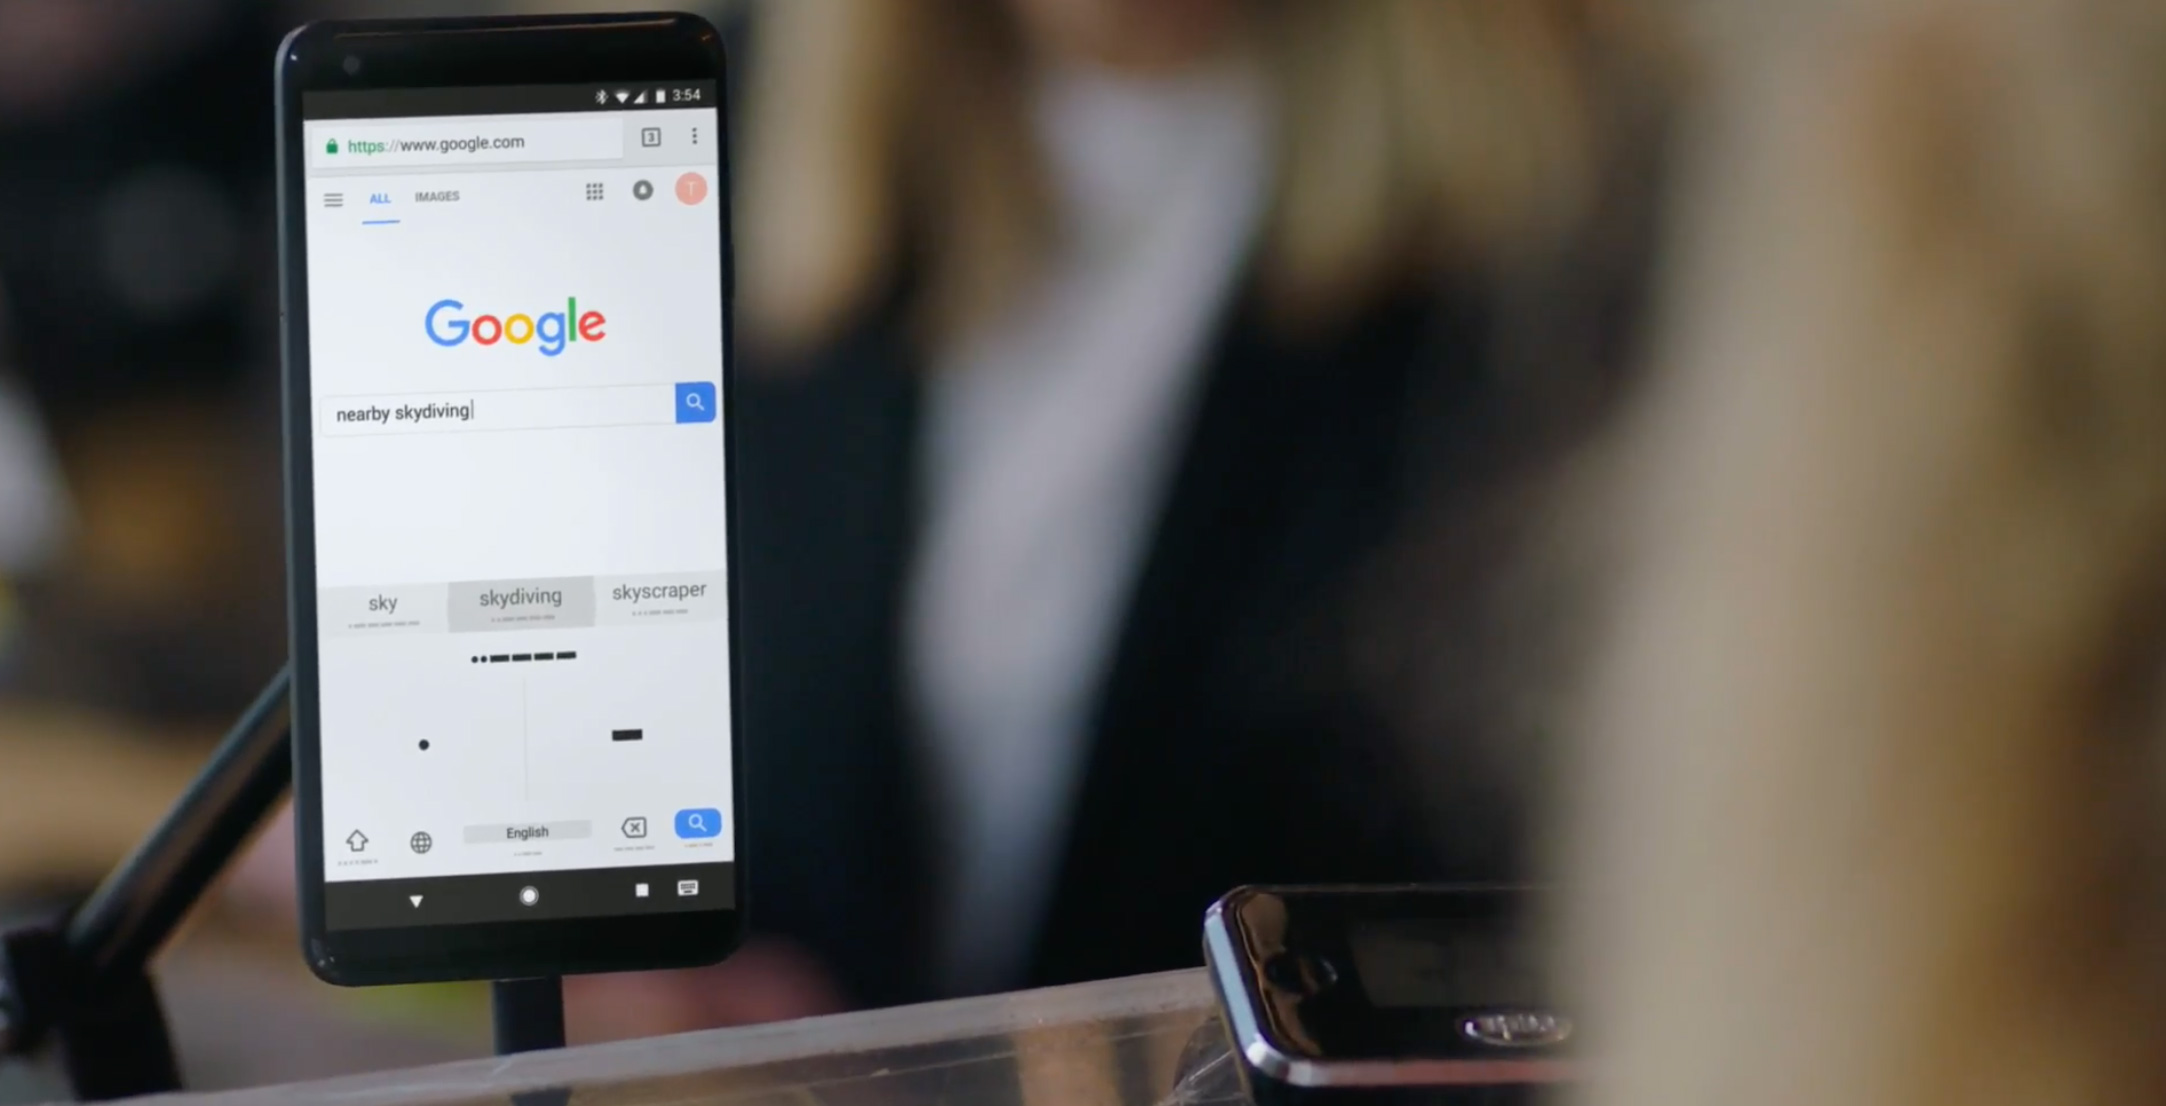 Google brings Morse code to Gboard